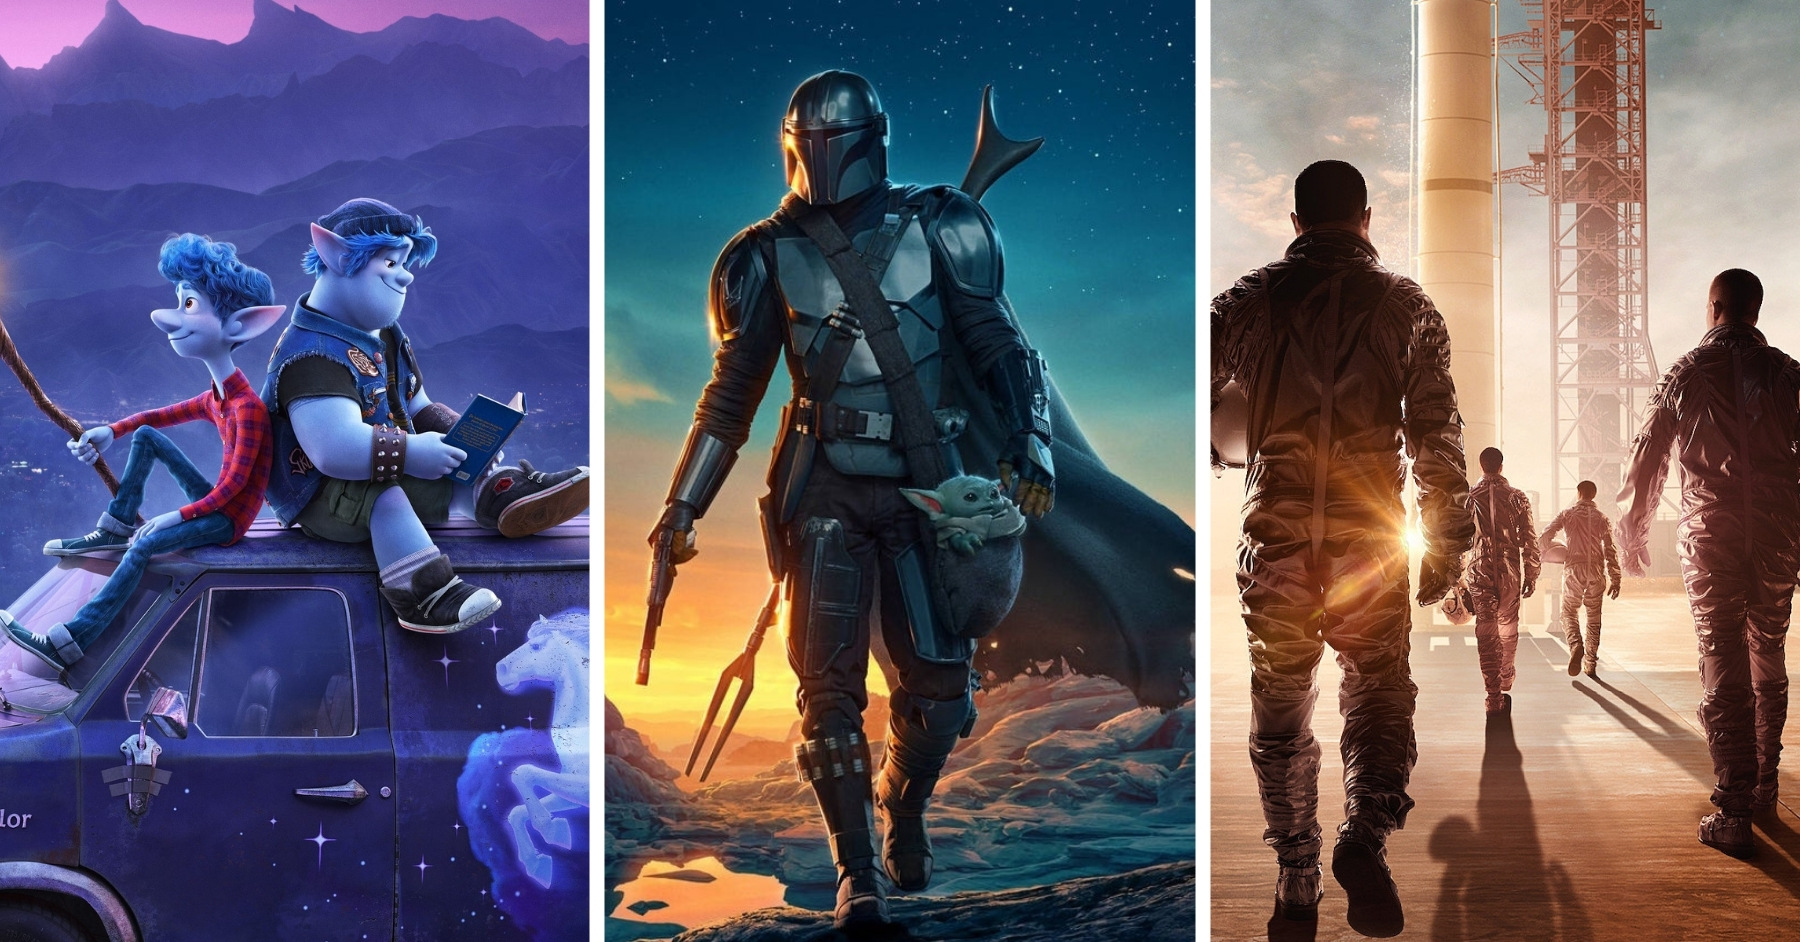 Whats on Disney+ October 2020 - Onward, The Mandalorian Season 2, , The Right Stuff and More